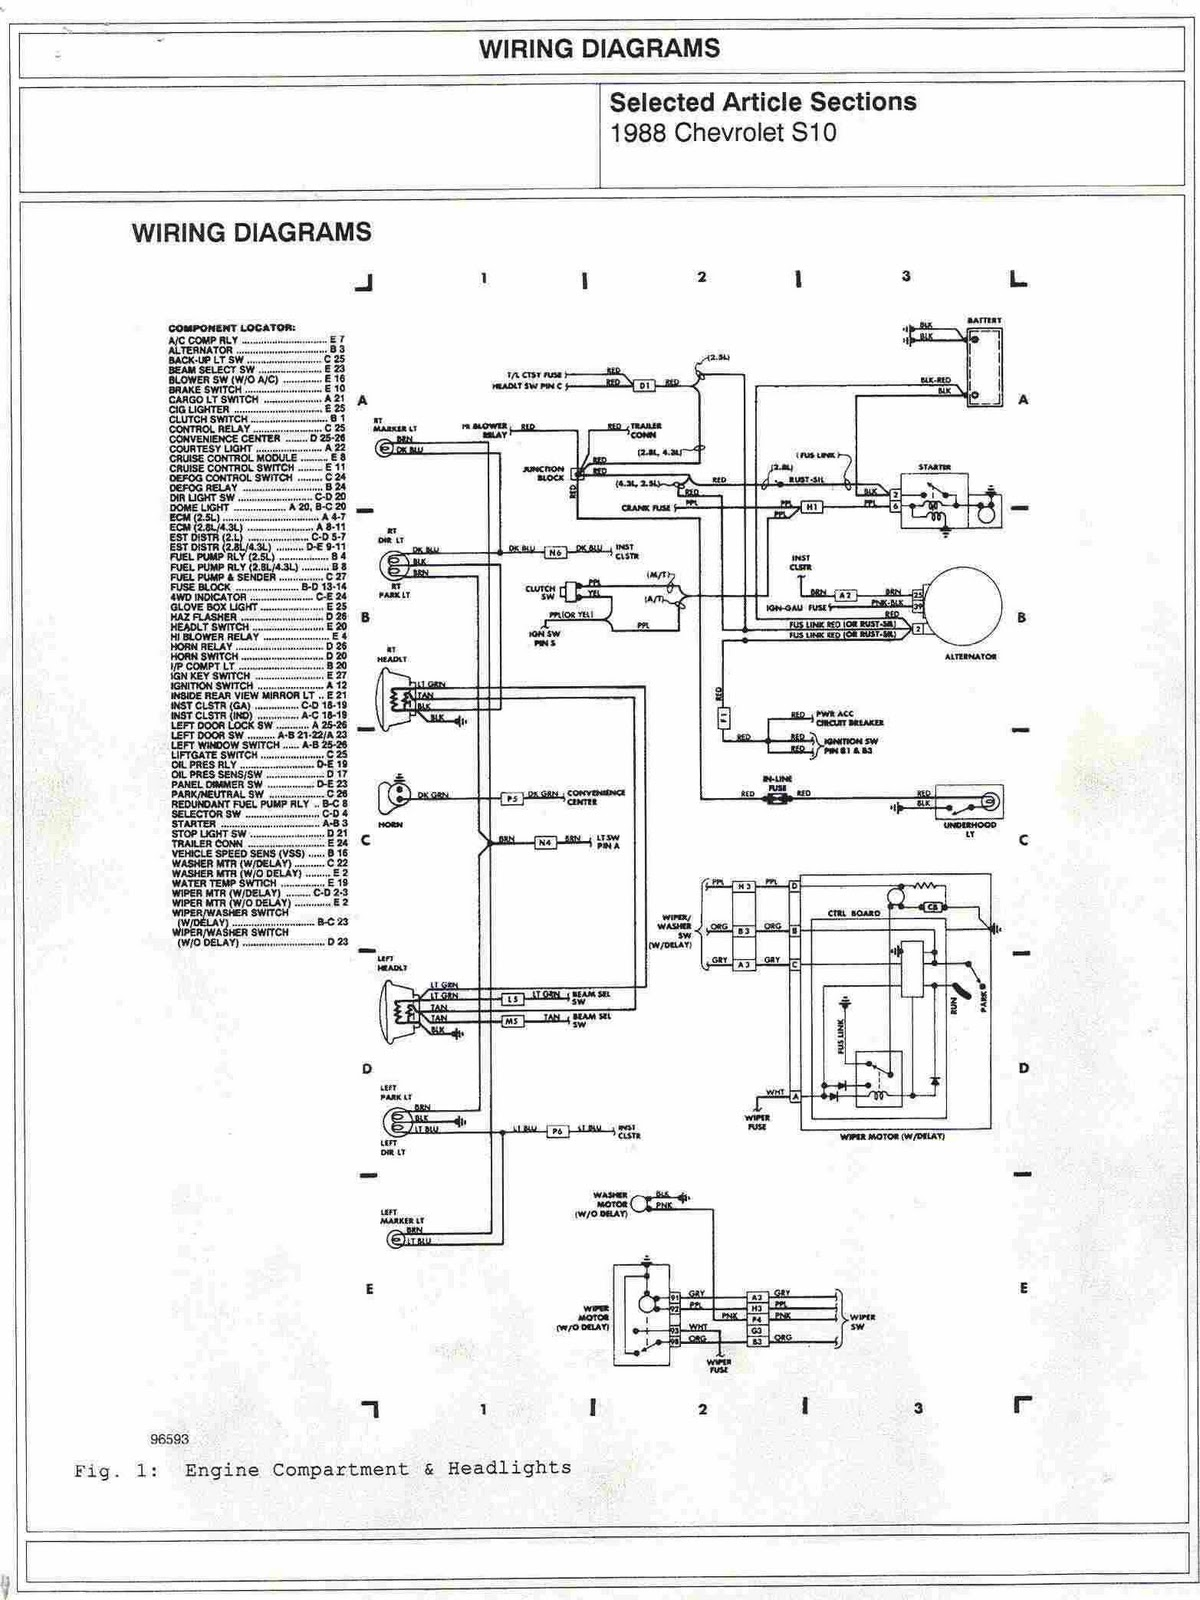 1997 S10 Wiring Schematic 1993 Chevy Silverado Radio Diagram 97 Headlight 31 Images Rh Cita Asia